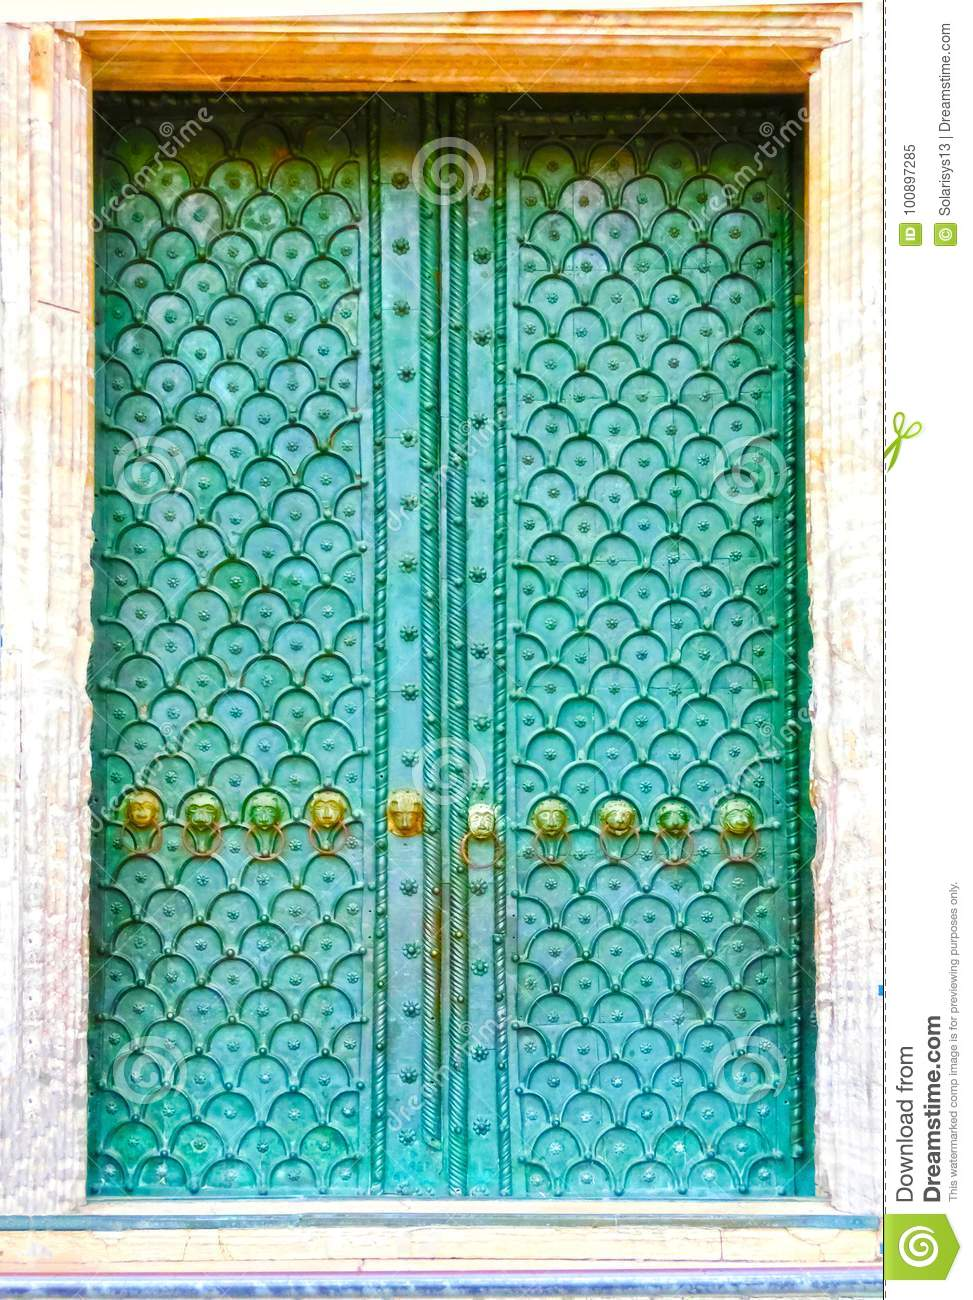 Old Door To Different Concepts: Restore, Solution